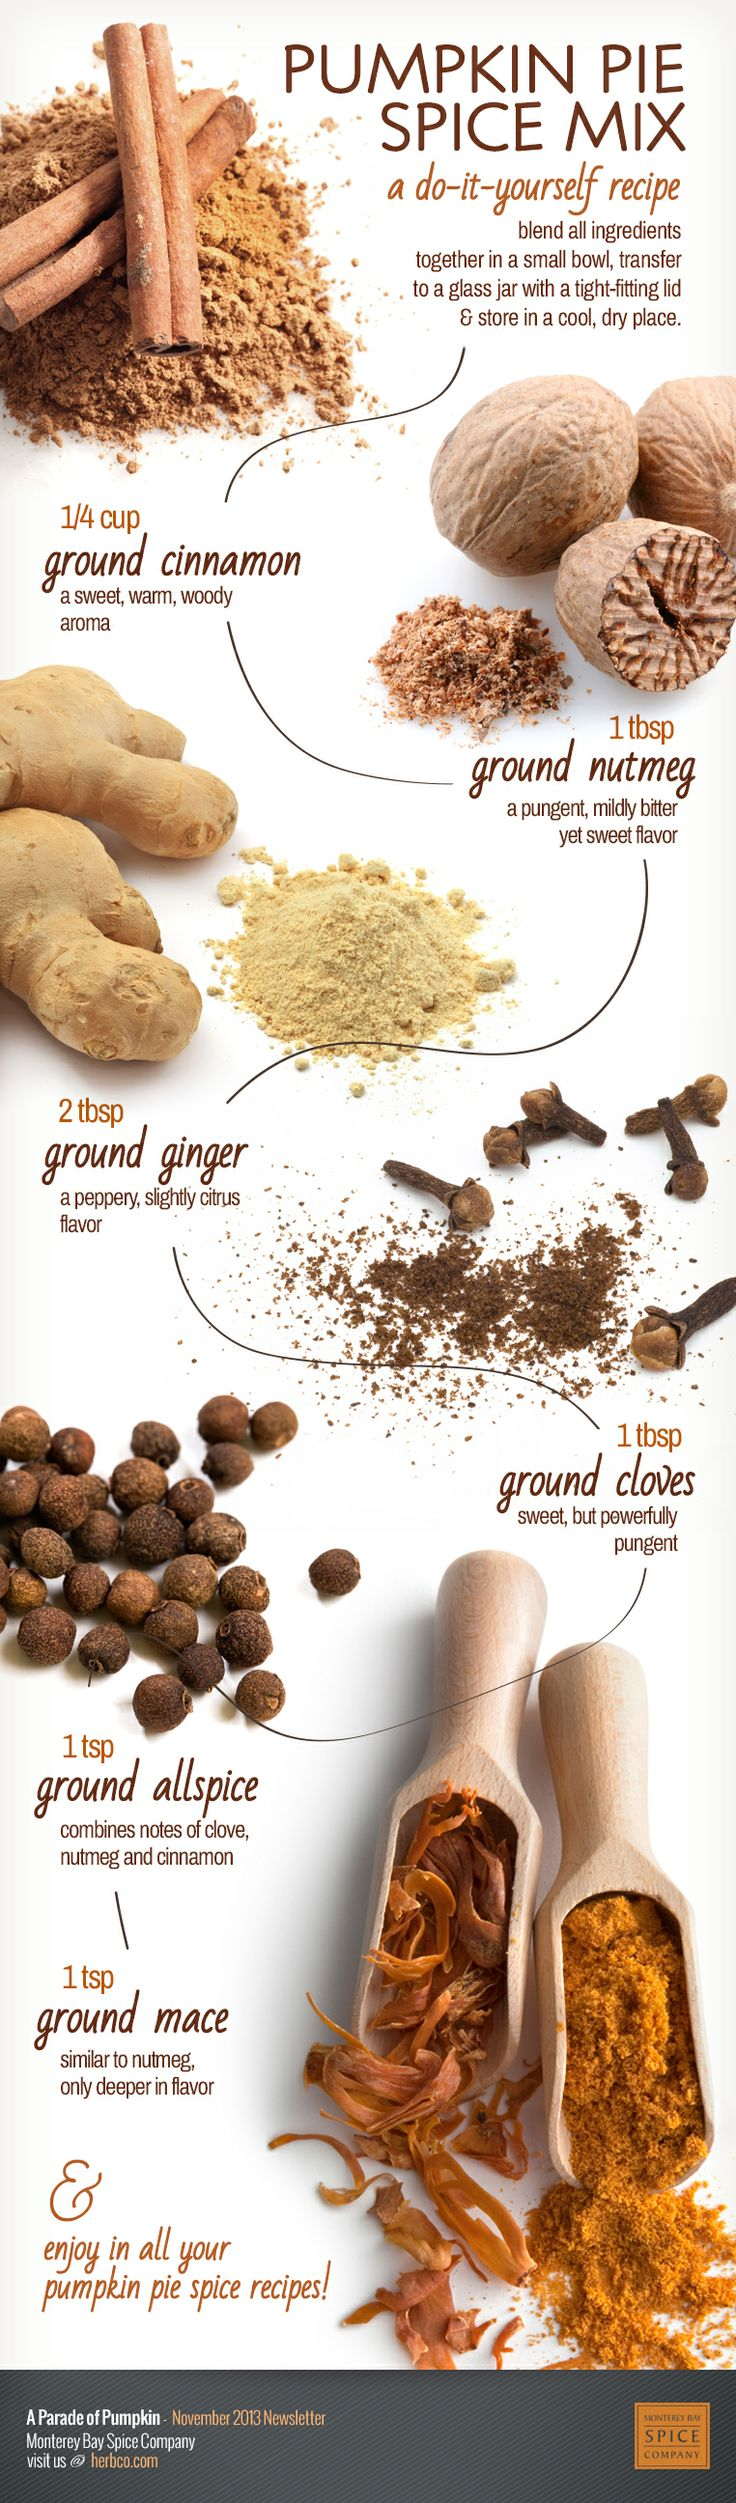 [ Infographic: Pumpkin Pie Spice Mix Recipe ] Made with: Cinnamon, nutmeg, ginger, cloves, allspice and mace. ~ from Monterey Bay Spice Company